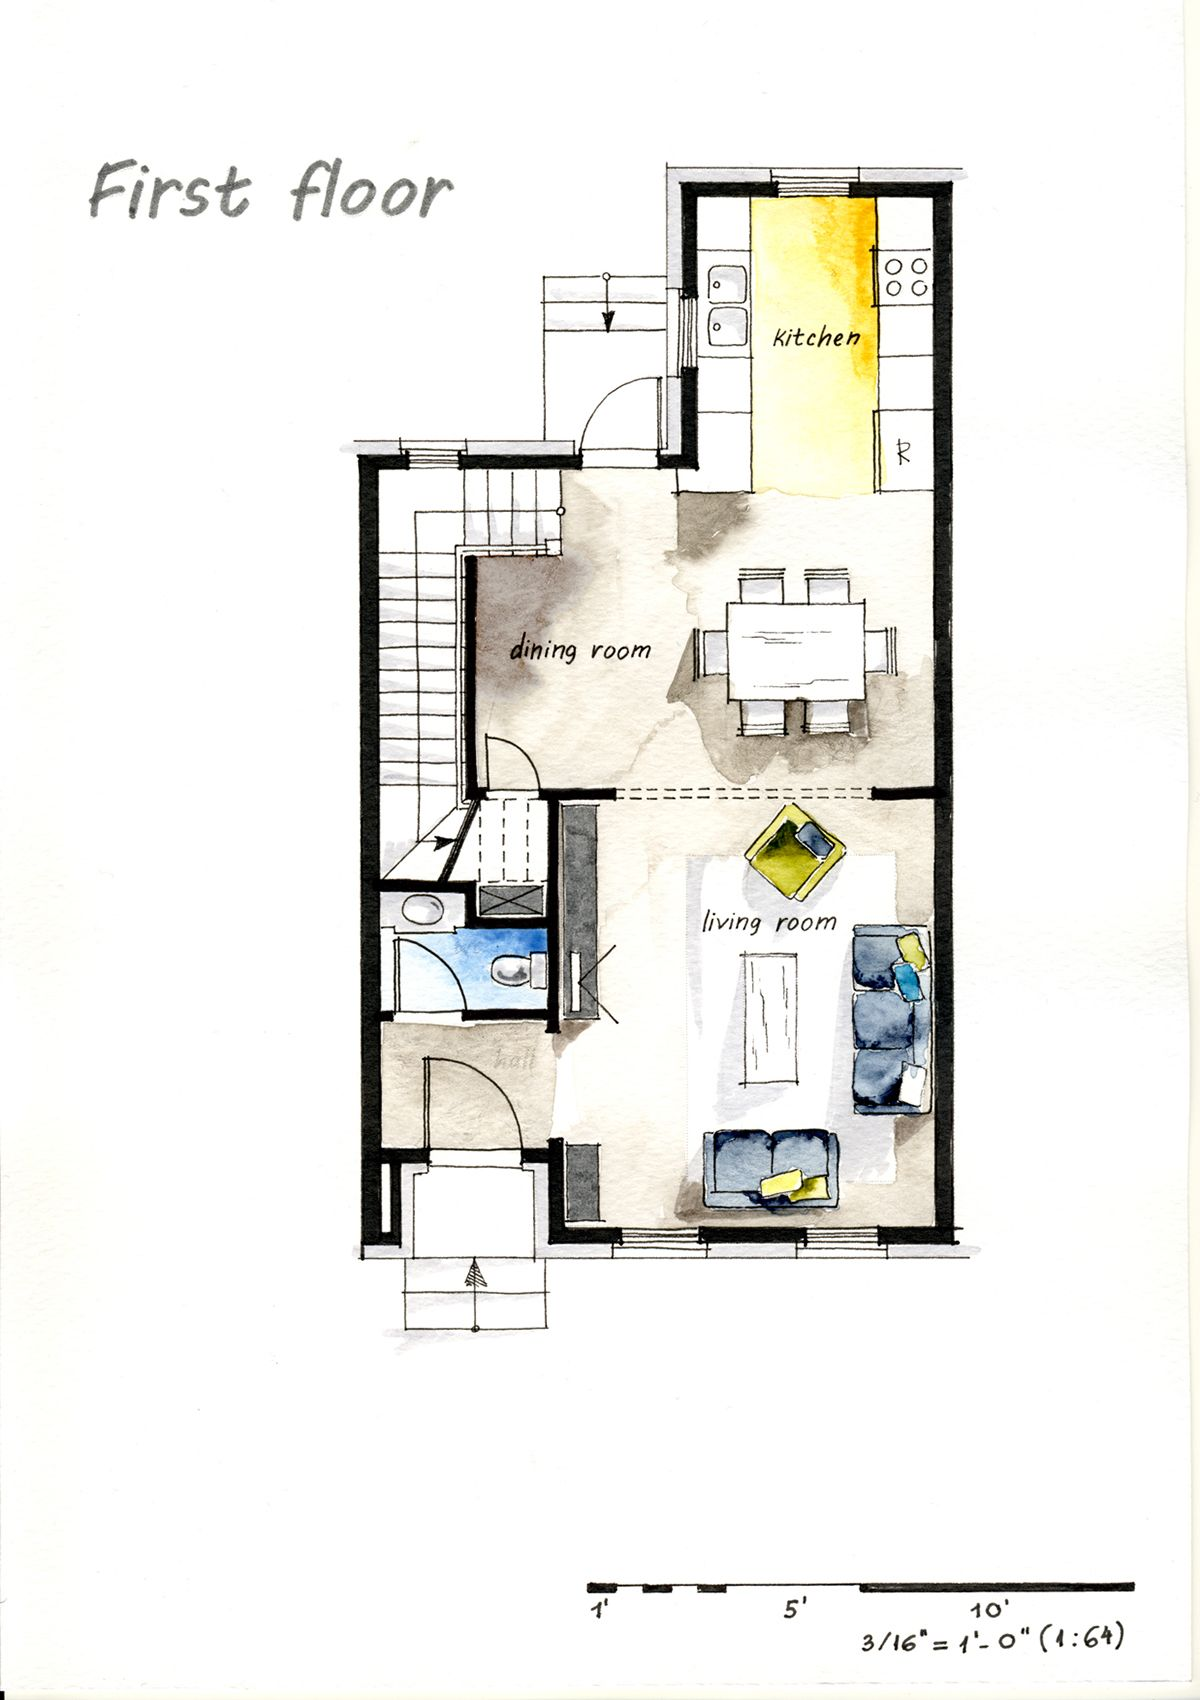 Drawing House Floor Plans: Real Estate Watercolor 2D Floor Plans Part 2 On Behance